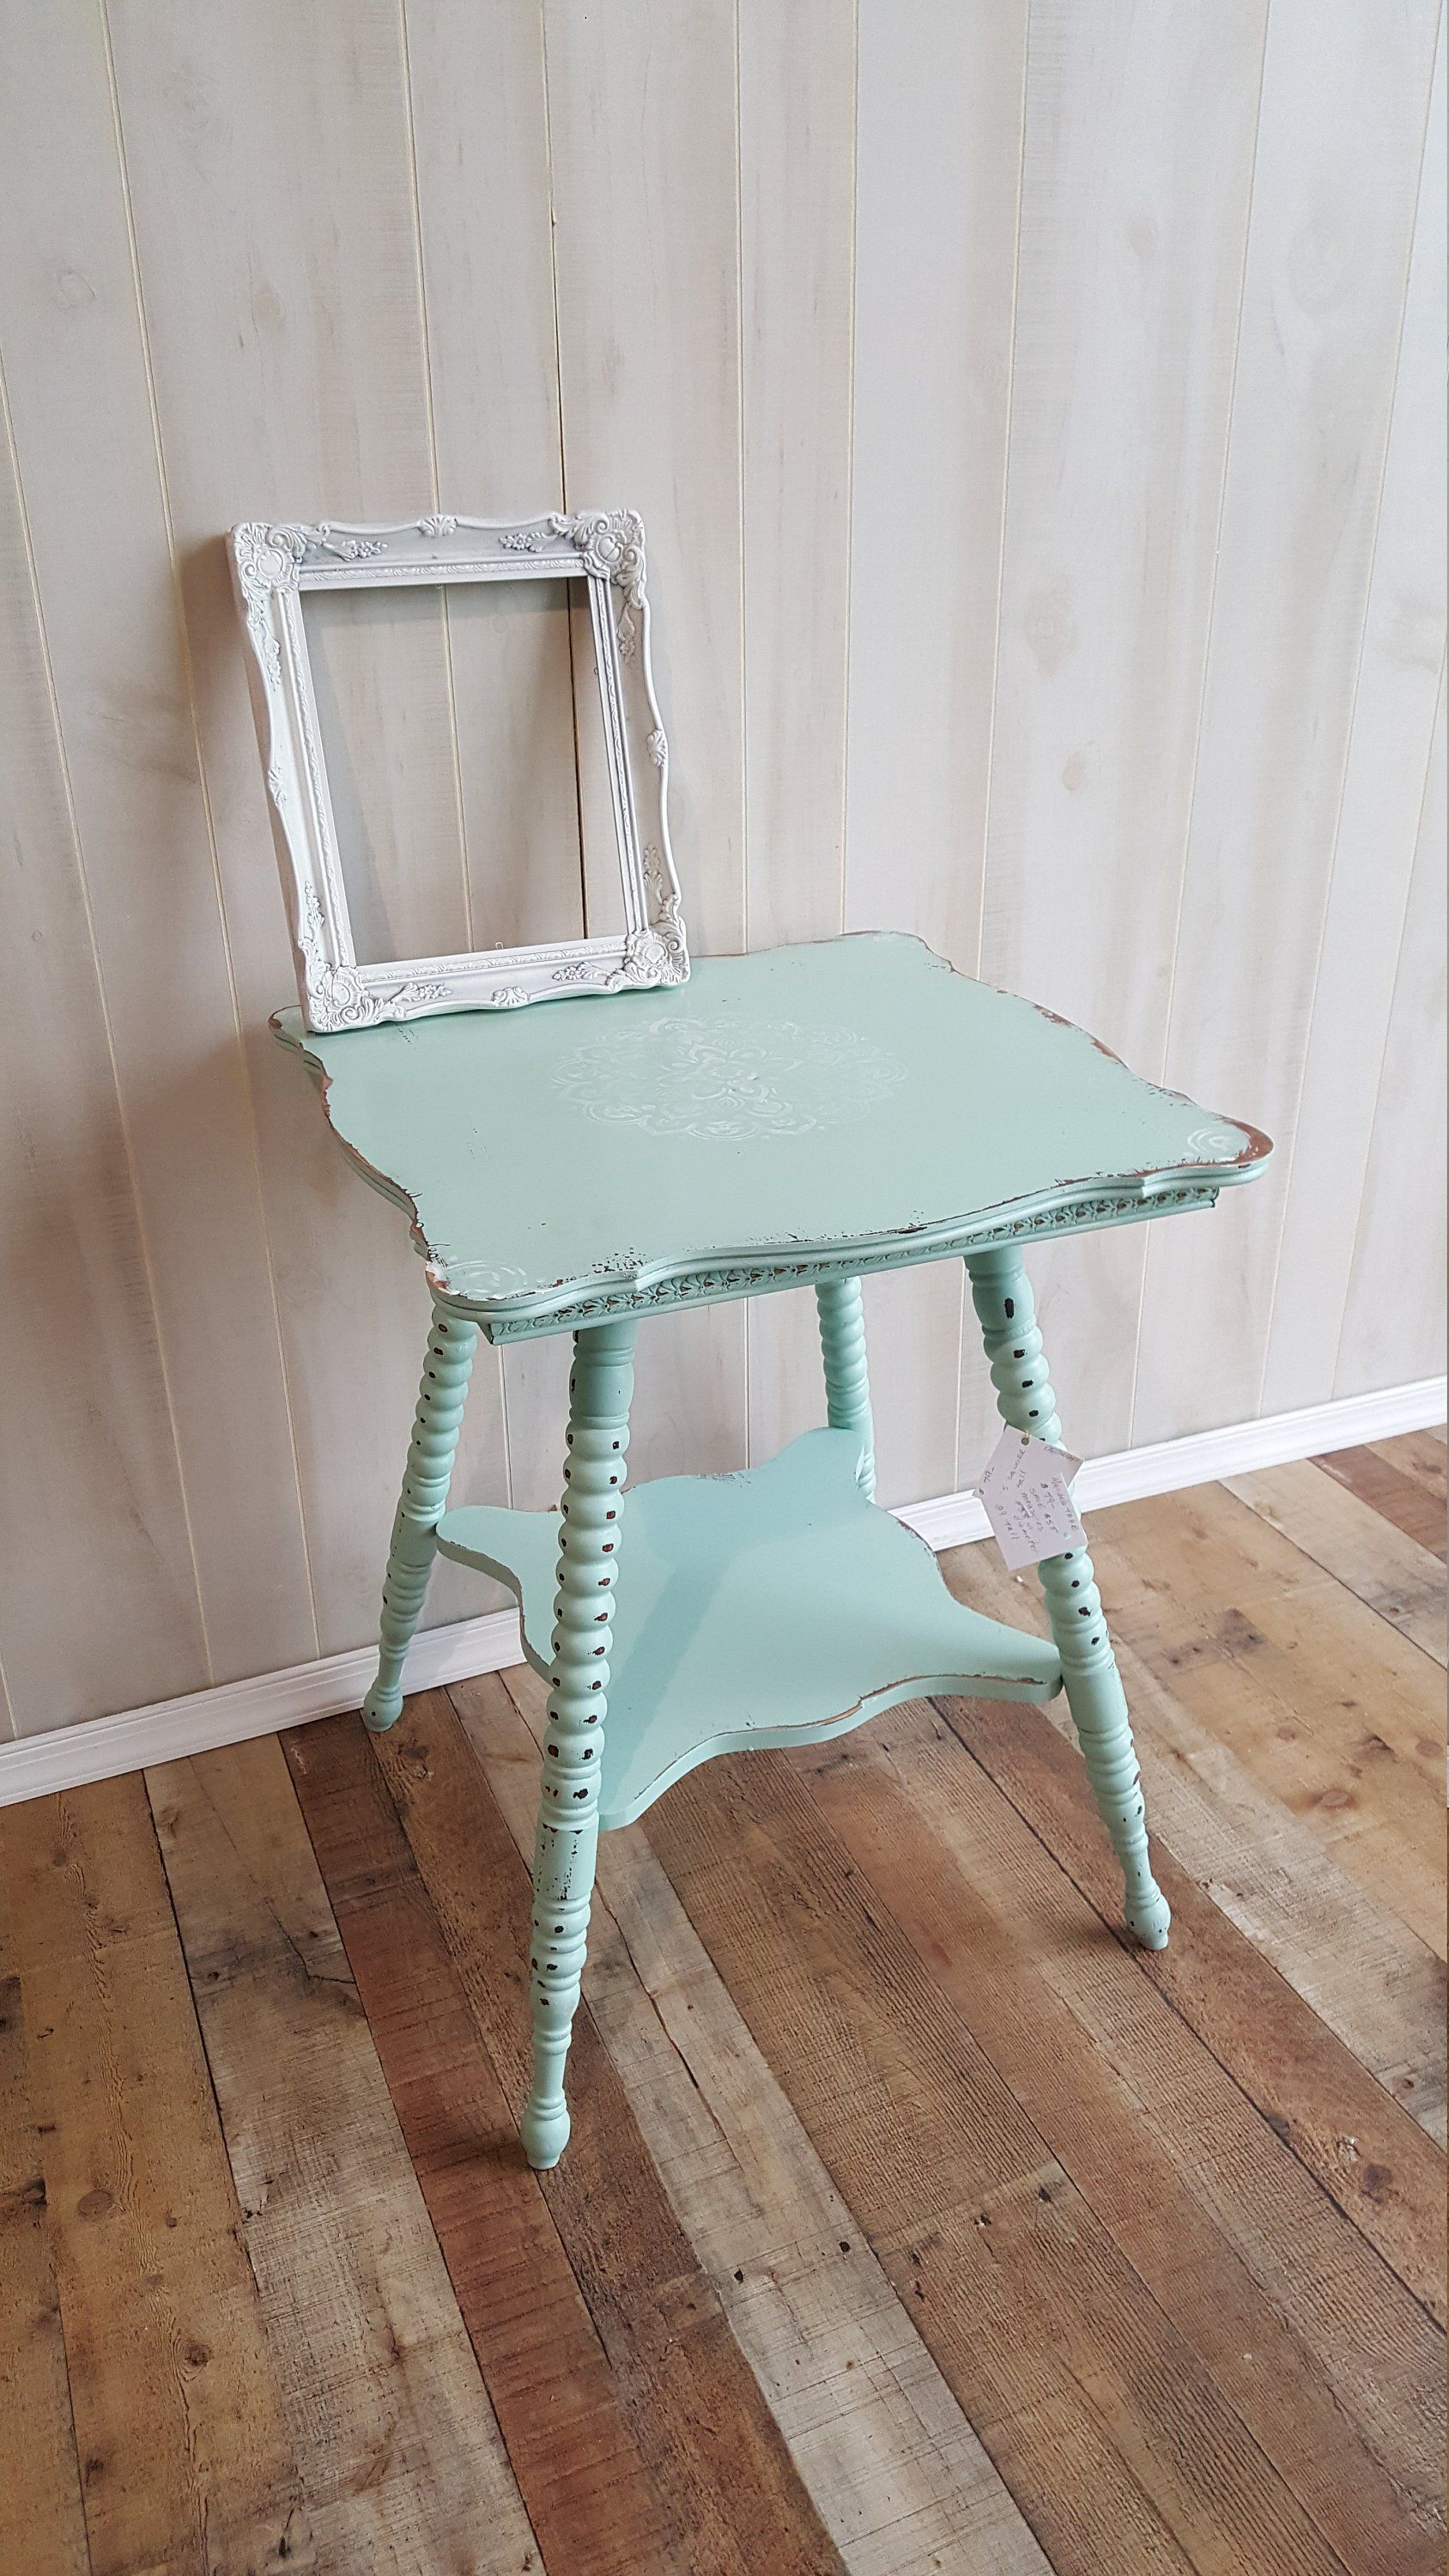 accent table antique painted pale gree vintage tall square stencil the middle and then distressed measures wide glass pendant shades pottery barn reading lamp ceramic end stool